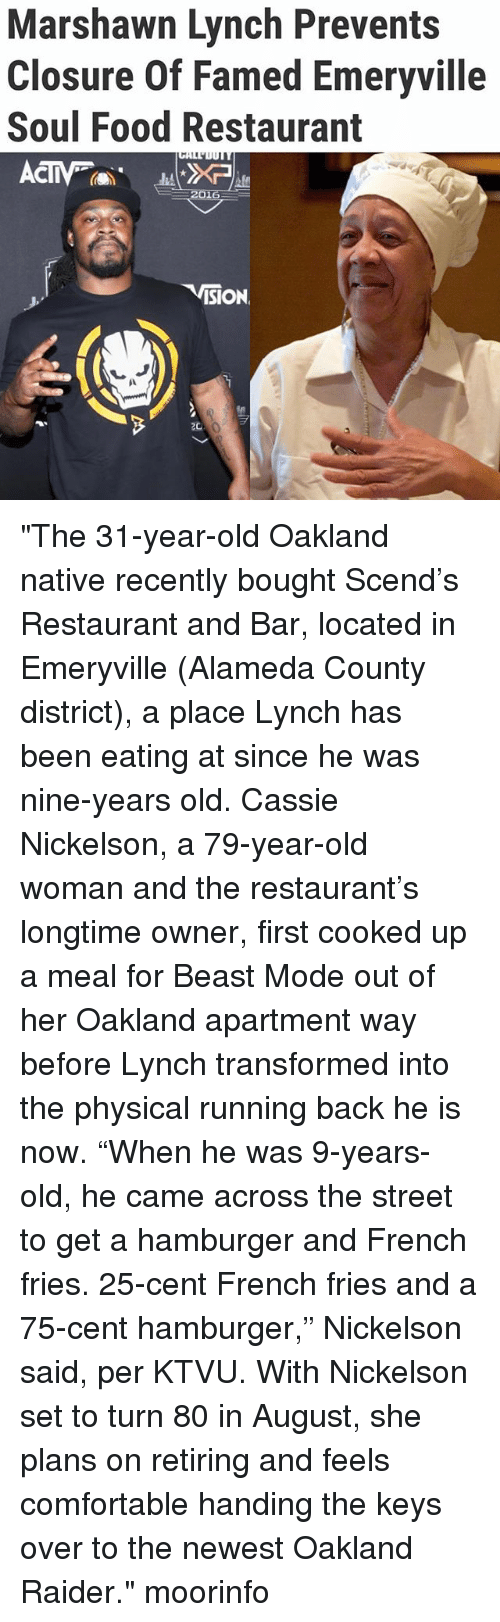 "Comfortable, Food, and Marshawn Lynch: Marshawn Lynch Prevents  Closure Of Famed Emeryville  Soul Food Restaurant  CIV  ISION ""The 31-year-old Oakland native recently bought Scend's Restaurant and Bar, located in Emeryville (Alameda County district), a place Lynch has been eating at since he was nine-years old. Cassie Nickelson, a 79-year-old woman and the restaurant's longtime owner, first cooked up a meal for Beast Mode out of her Oakland apartment way before Lynch transformed into the physical running back he is now. ""When he was 9-years-old, he came across the street to get a hamburger and French fries. 25-cent French fries and a 75-cent hamburger,"" Nickelson said, per KTVU. With Nickelson set to turn 80 in August, she plans on retiring and feels comfortable handing the keys over to the newest Oakland Raider."" moorinfo"